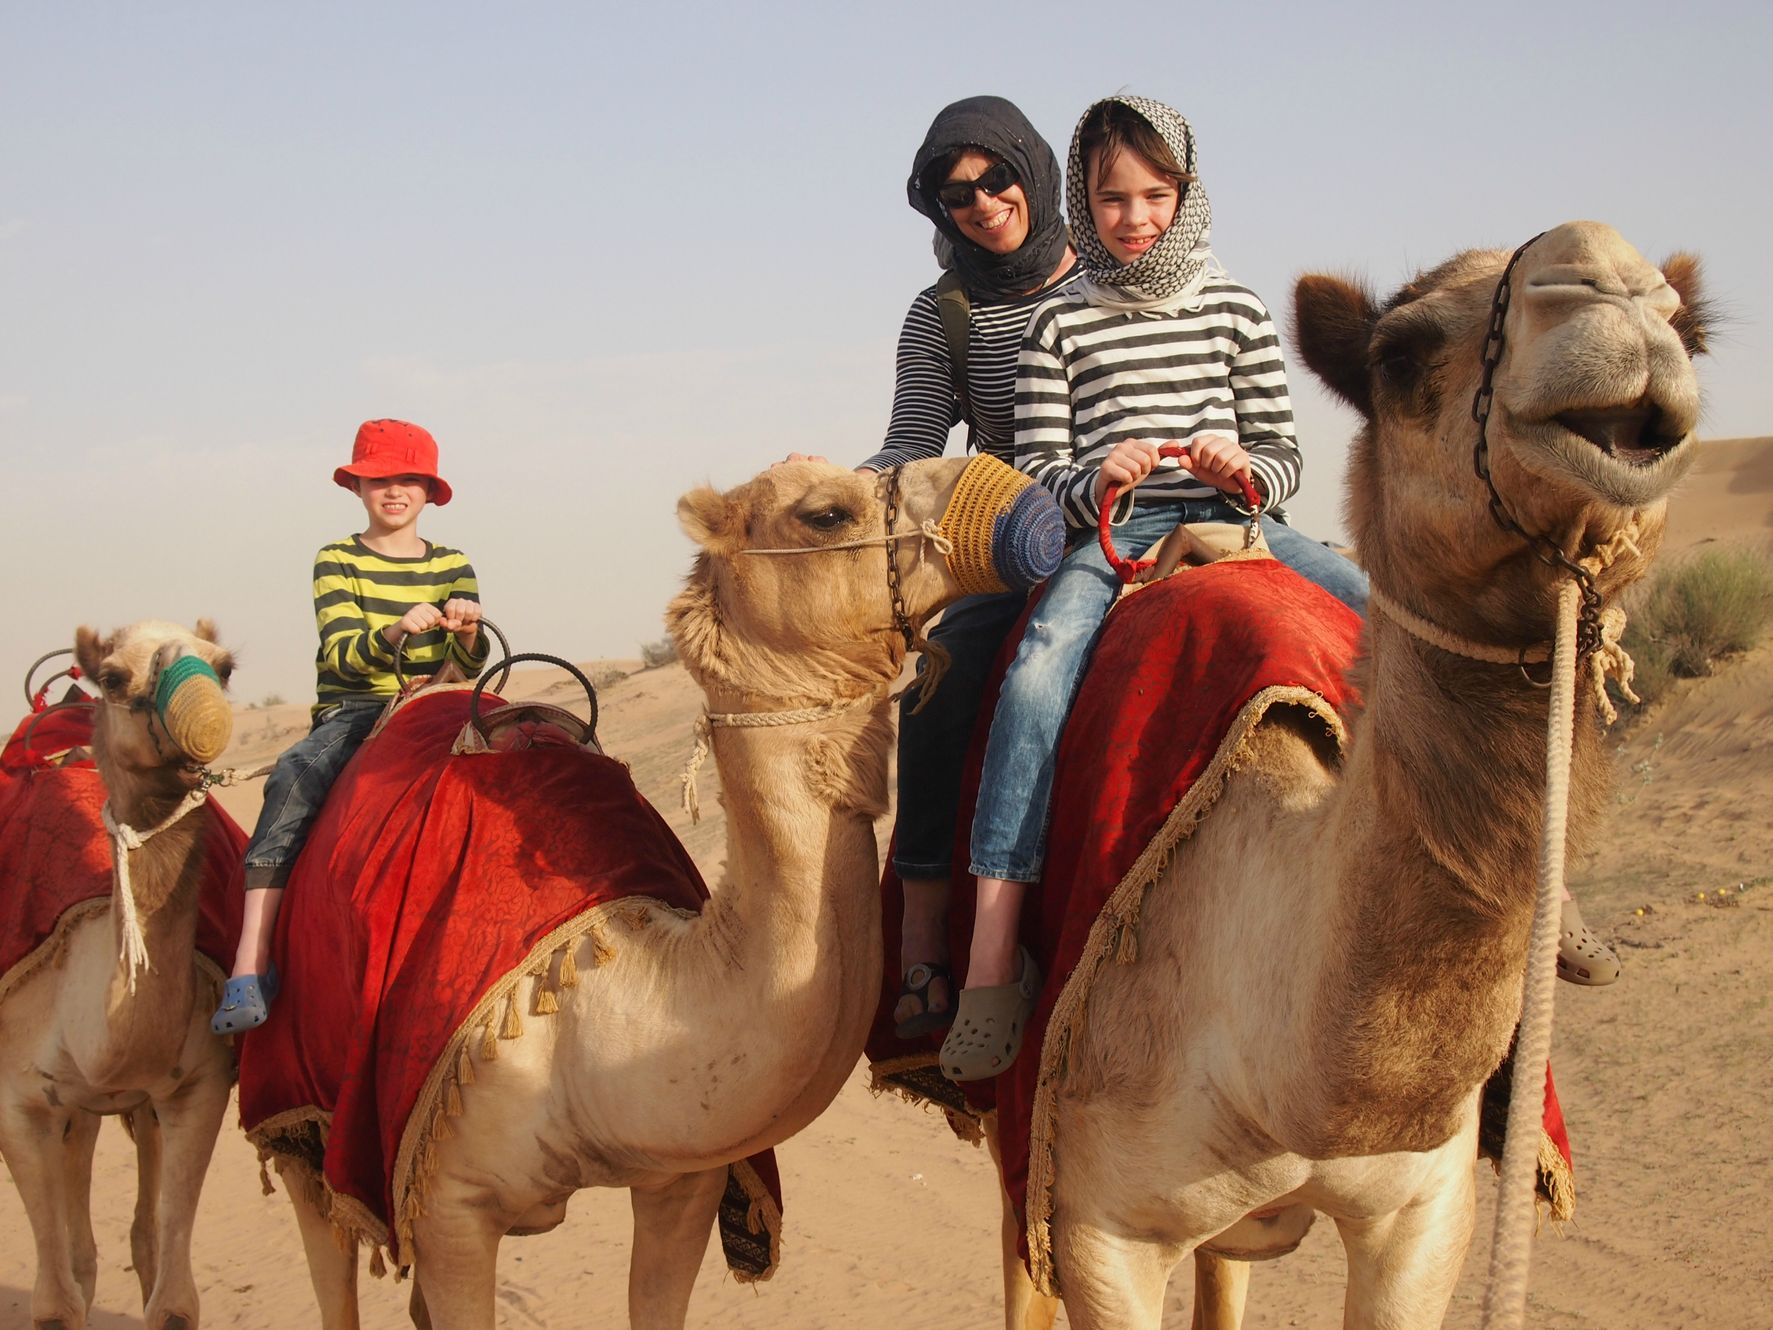 World Travel Family riding on camels